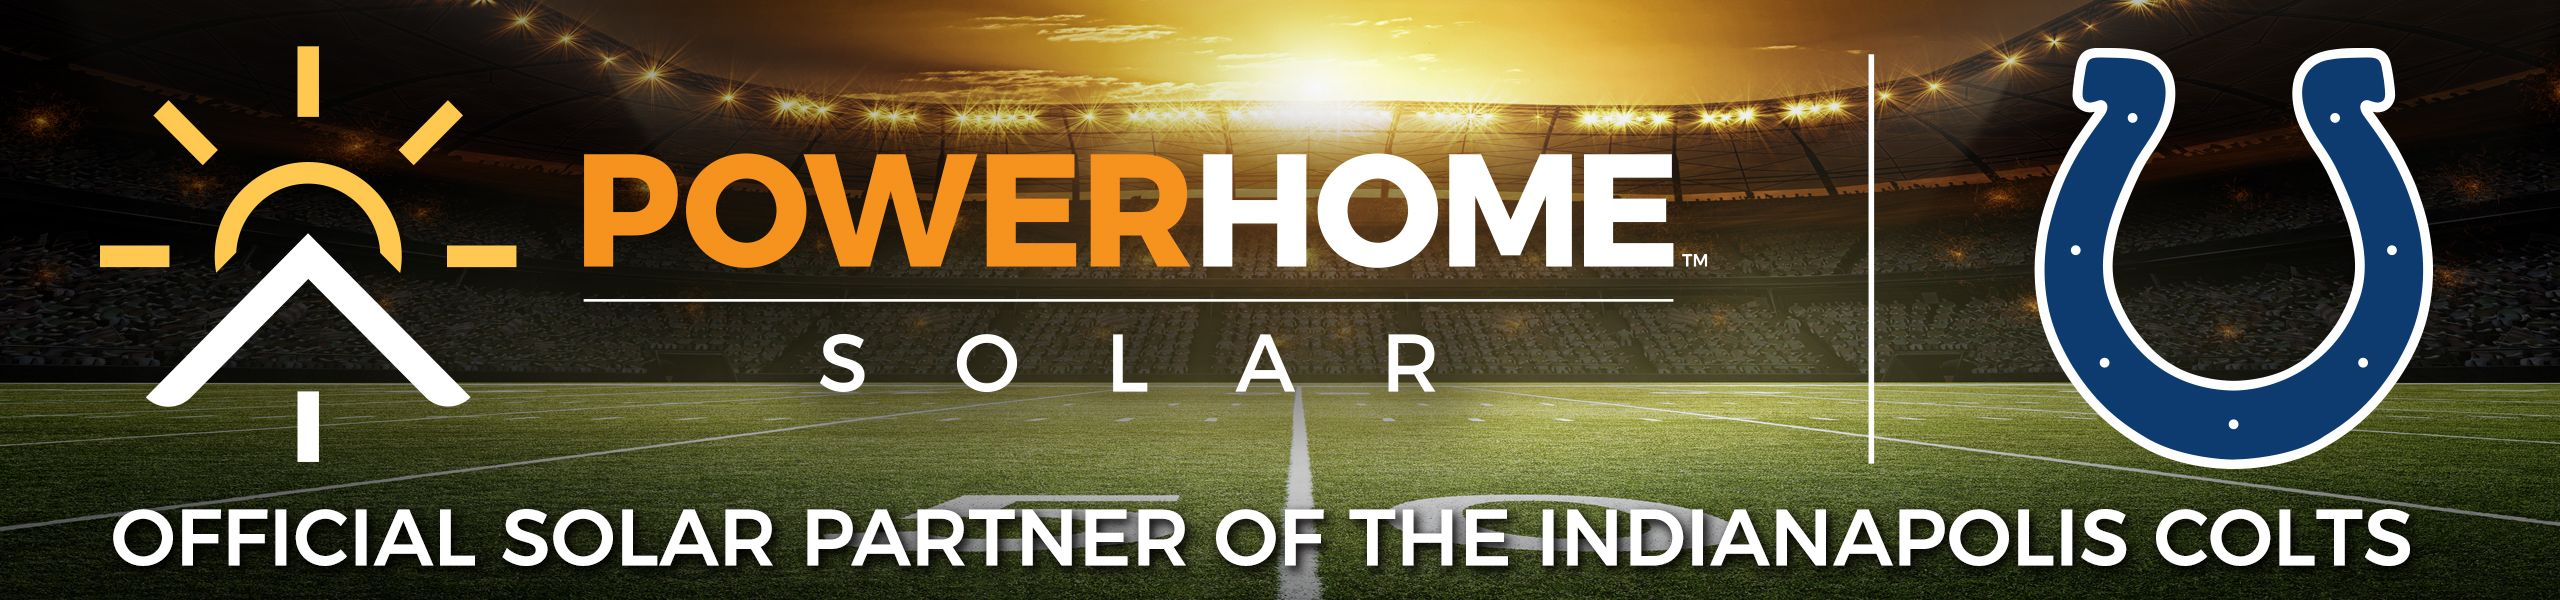 Powerhome Solar  Official Solar Partner Of The Indianapolis Colts